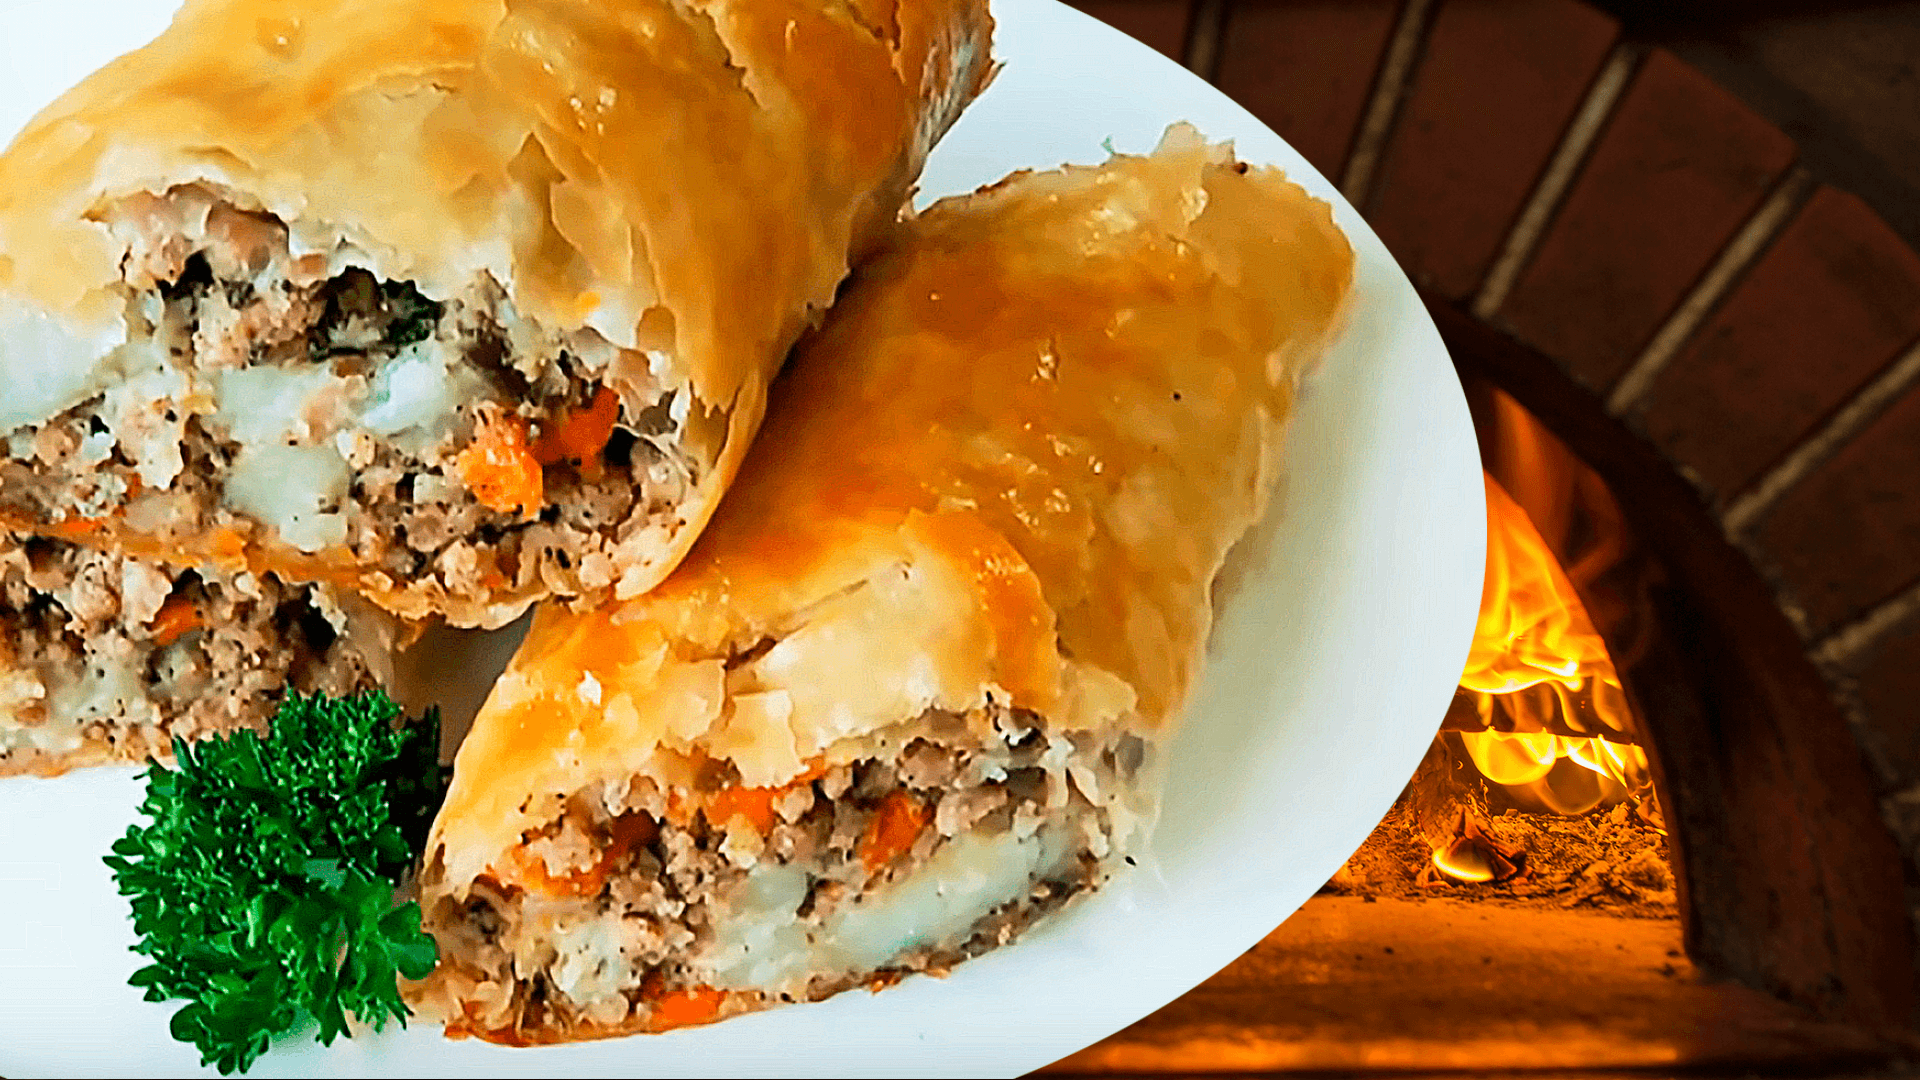 Easy Pork Pie Recipe with Mince, Potato, and Carrot